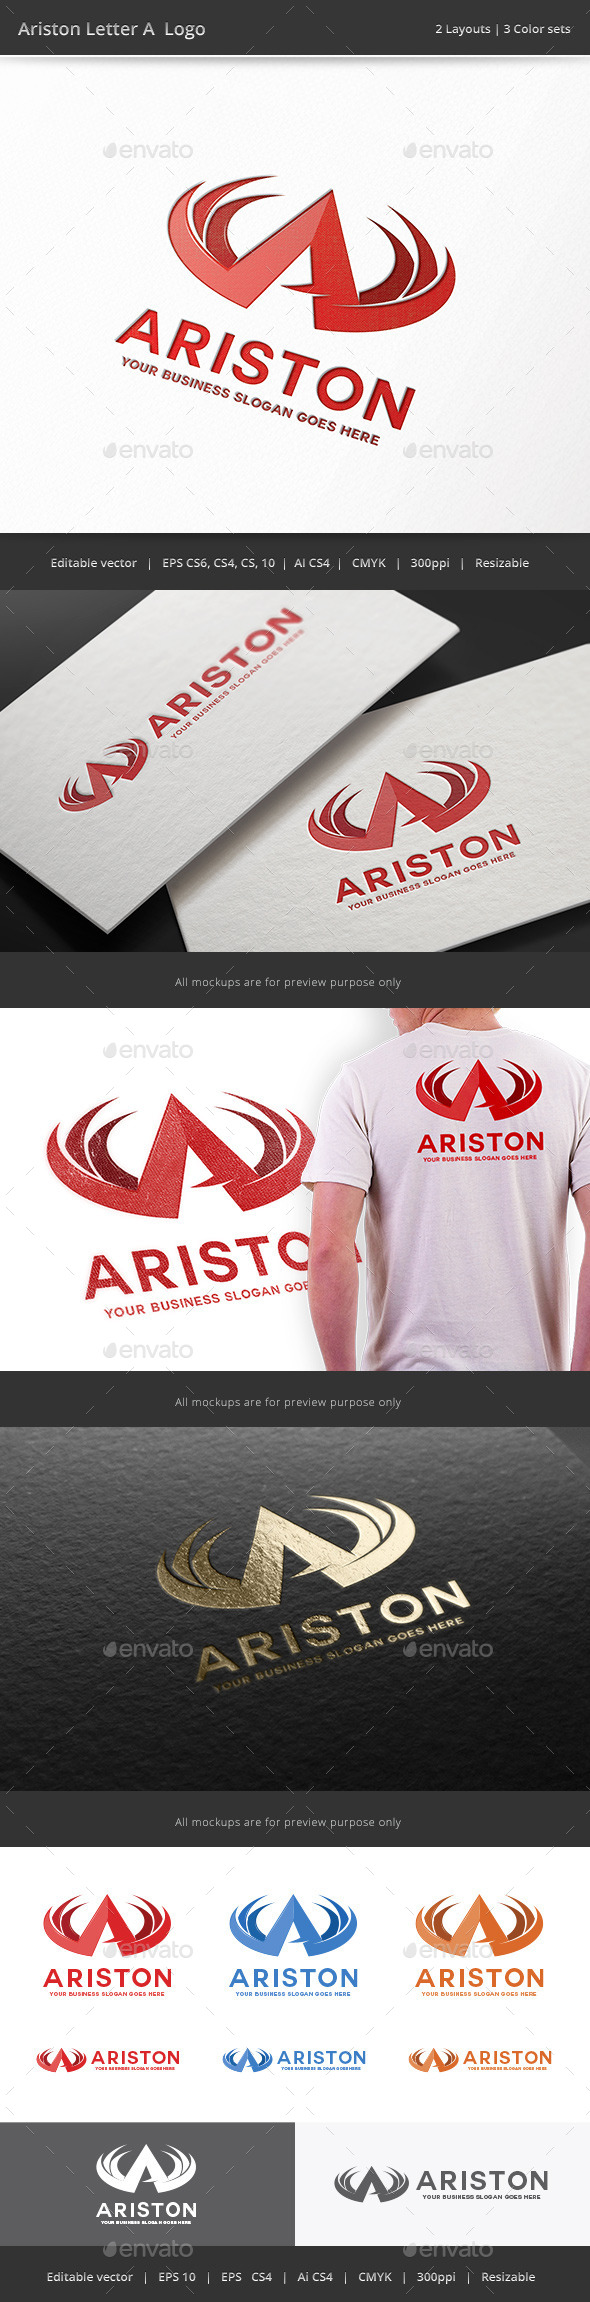 GraphicRiver Ariston Letter A Logo 9926072